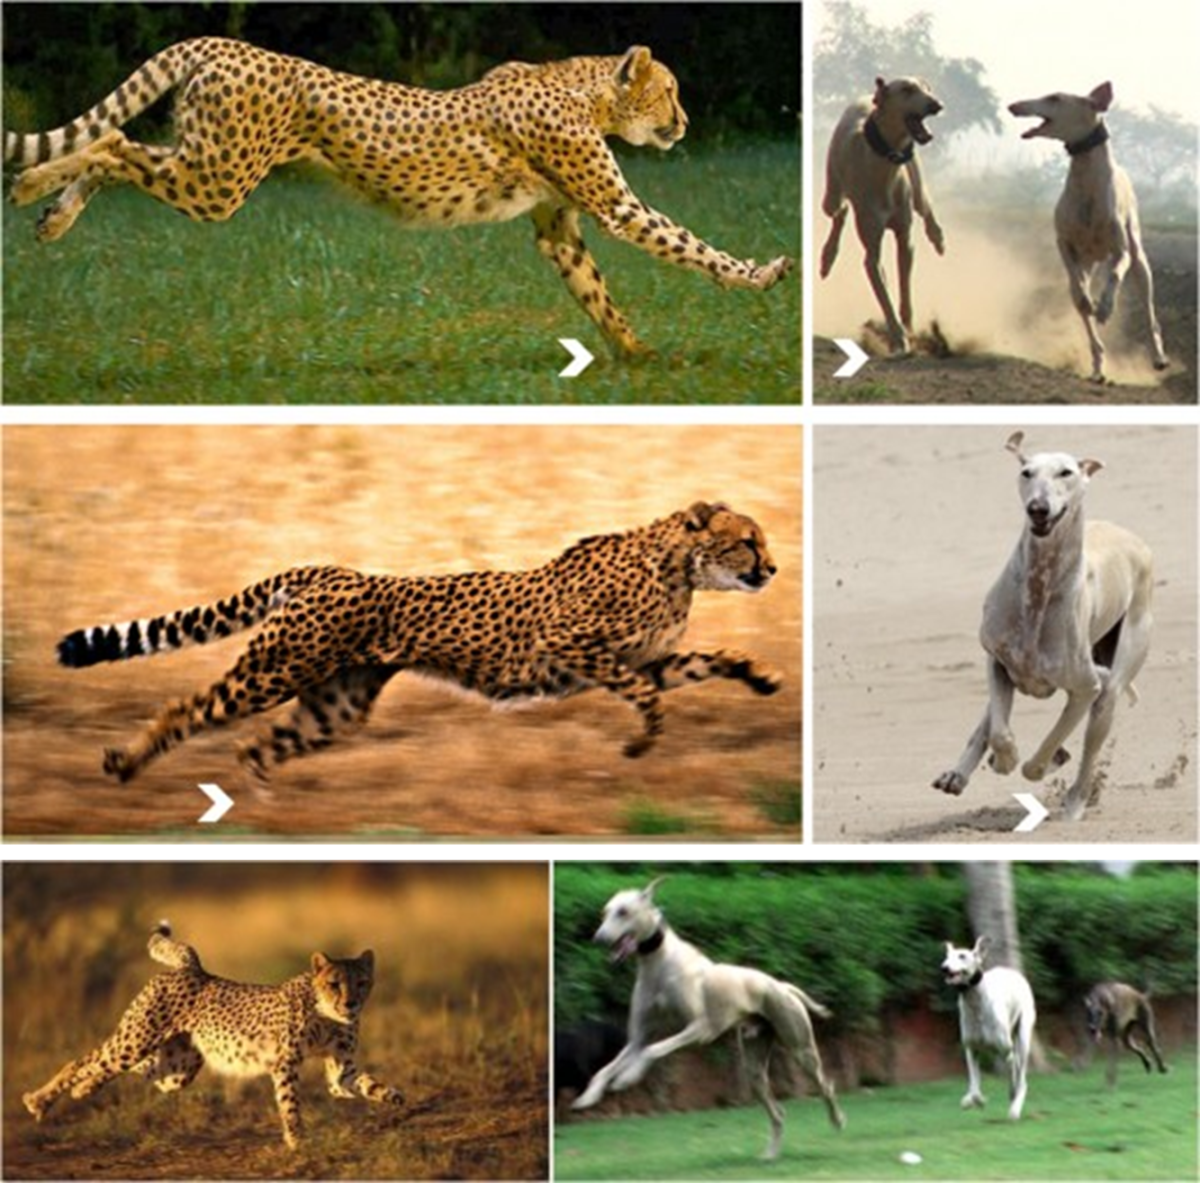 Cheetah and Caravan Hound Running Pattern